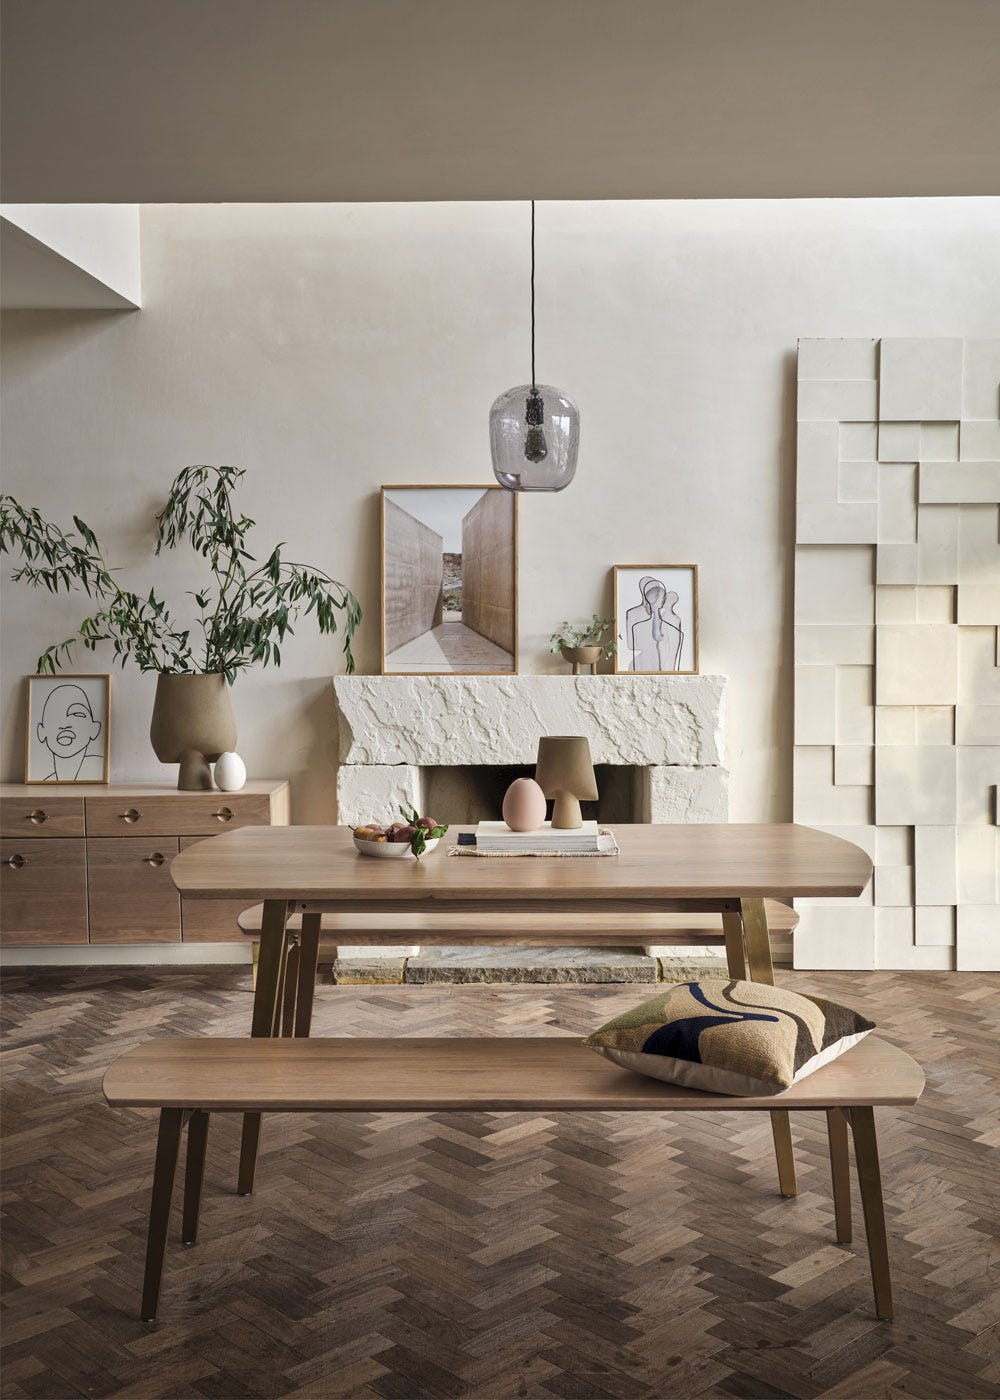 As shown: Crawford dining table and bench